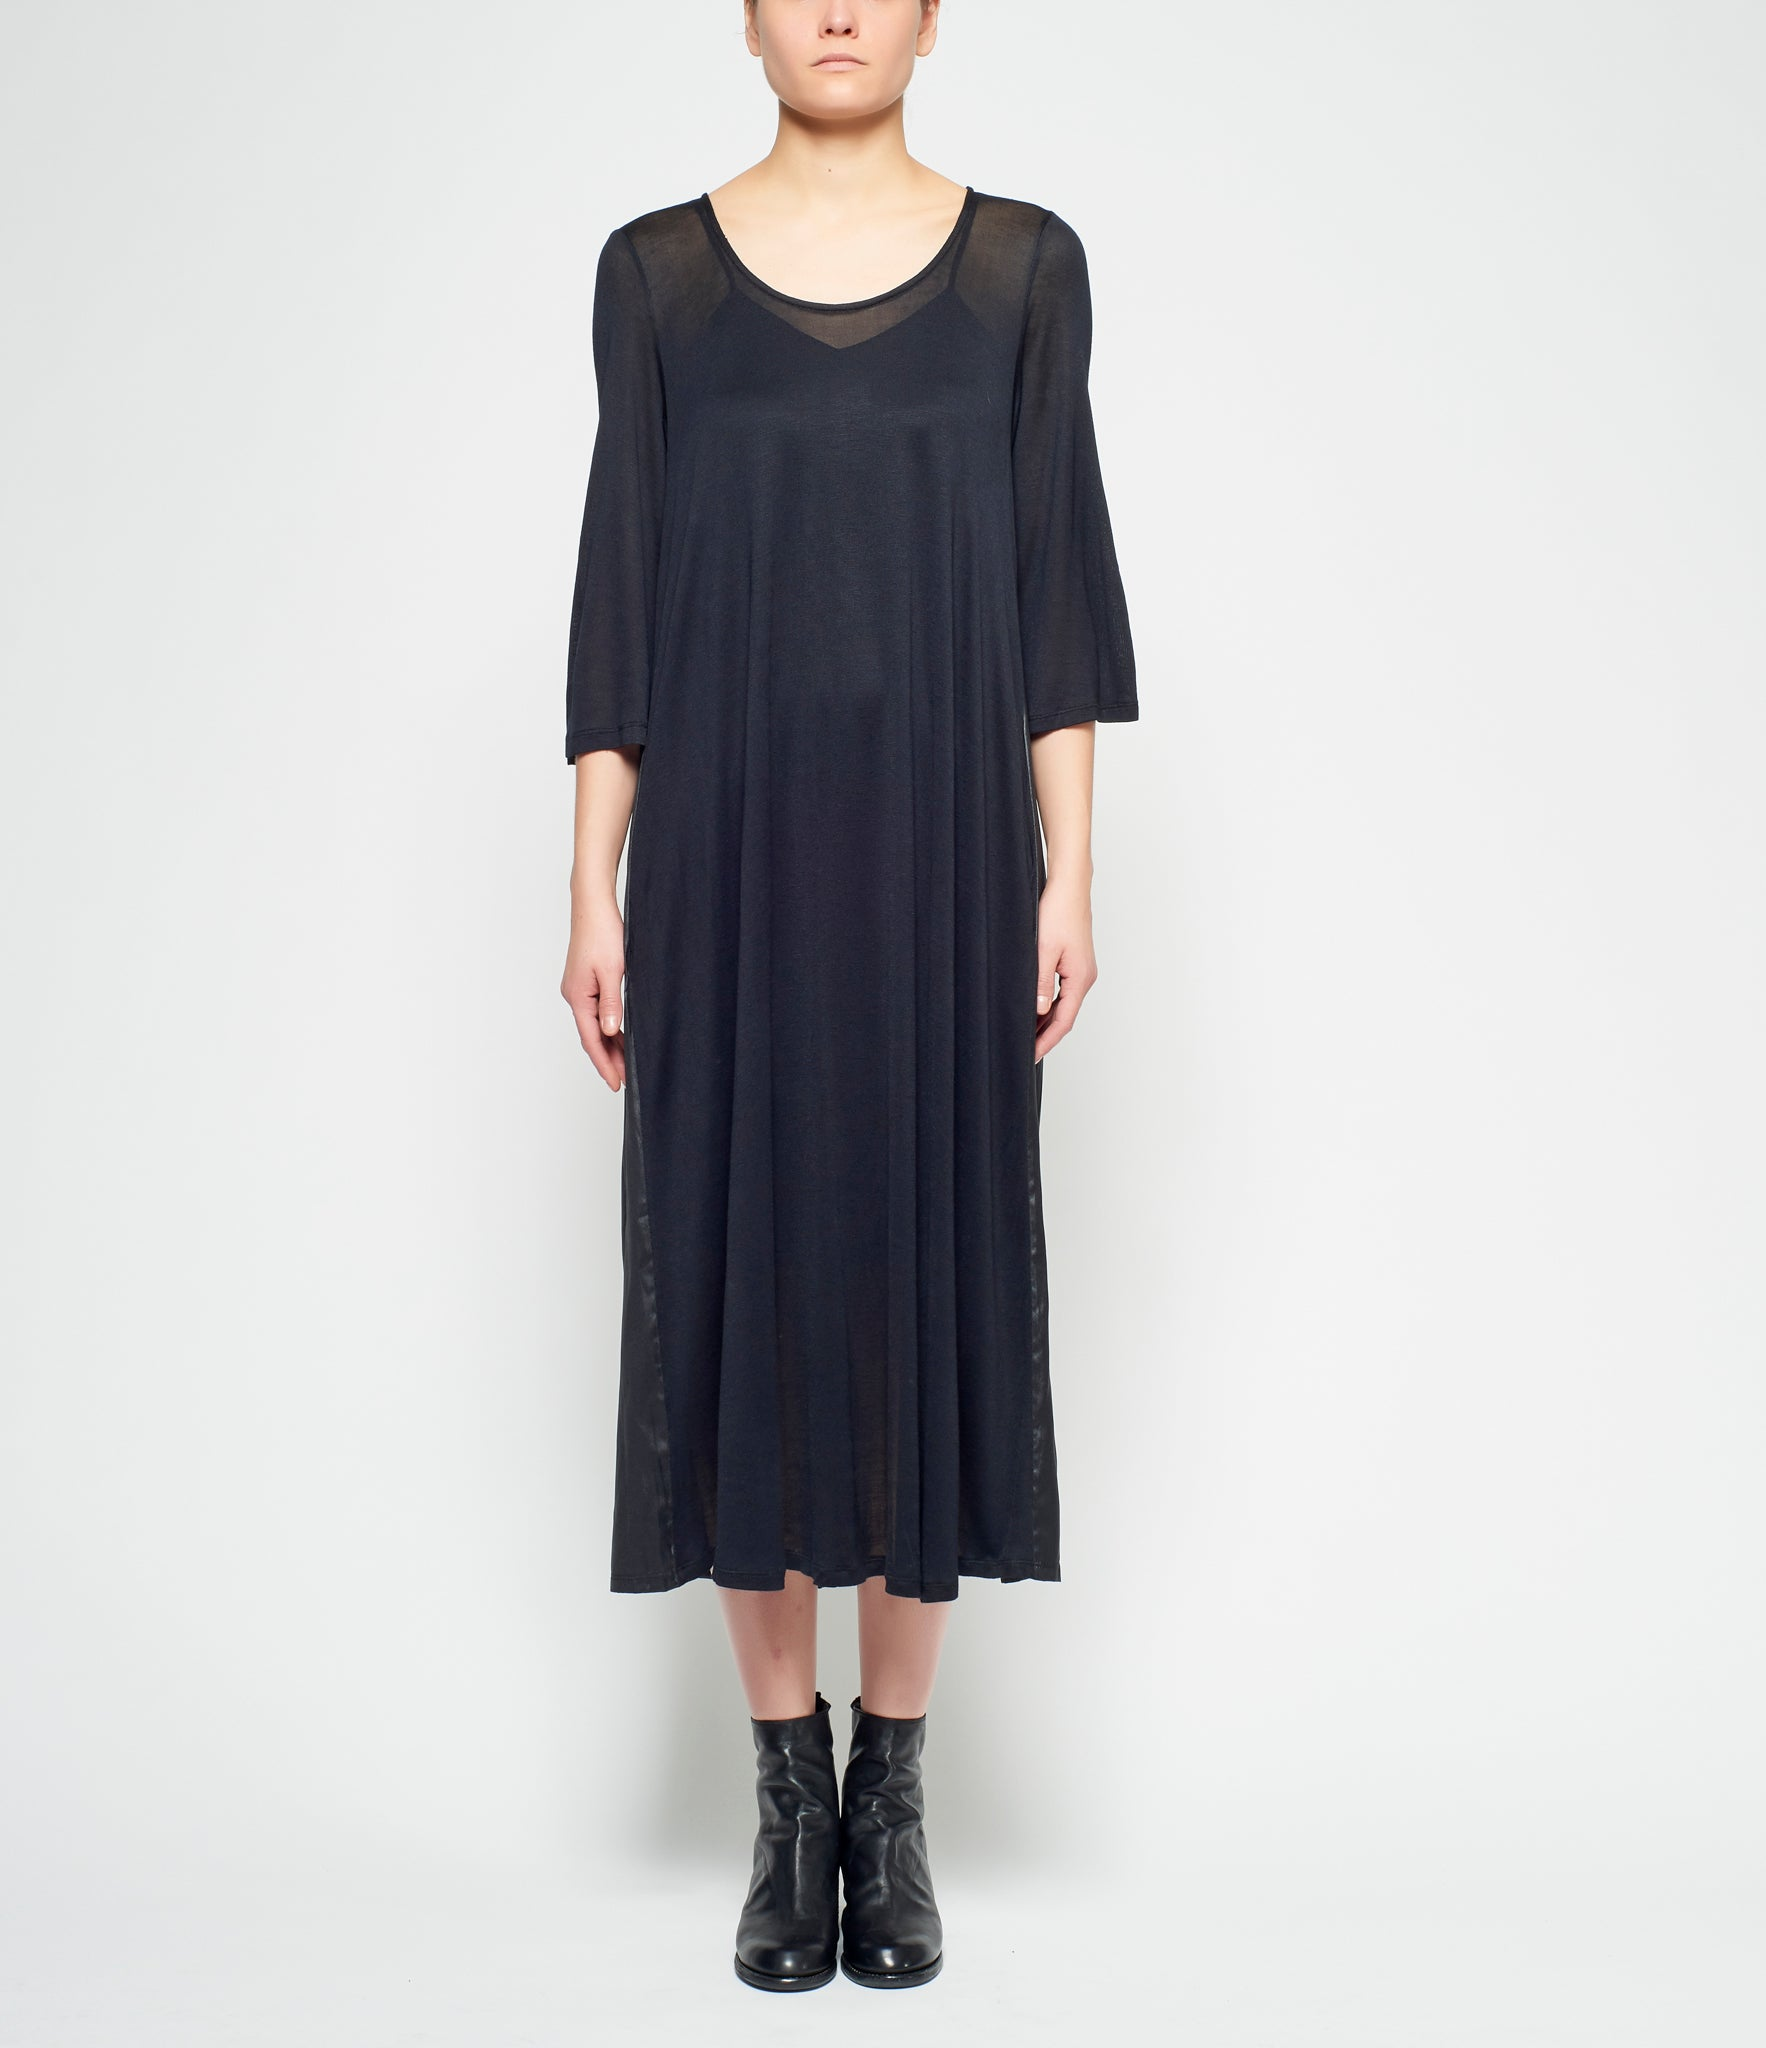 Replika Black Polyester Satin Paneled Bamboo Knit Dress